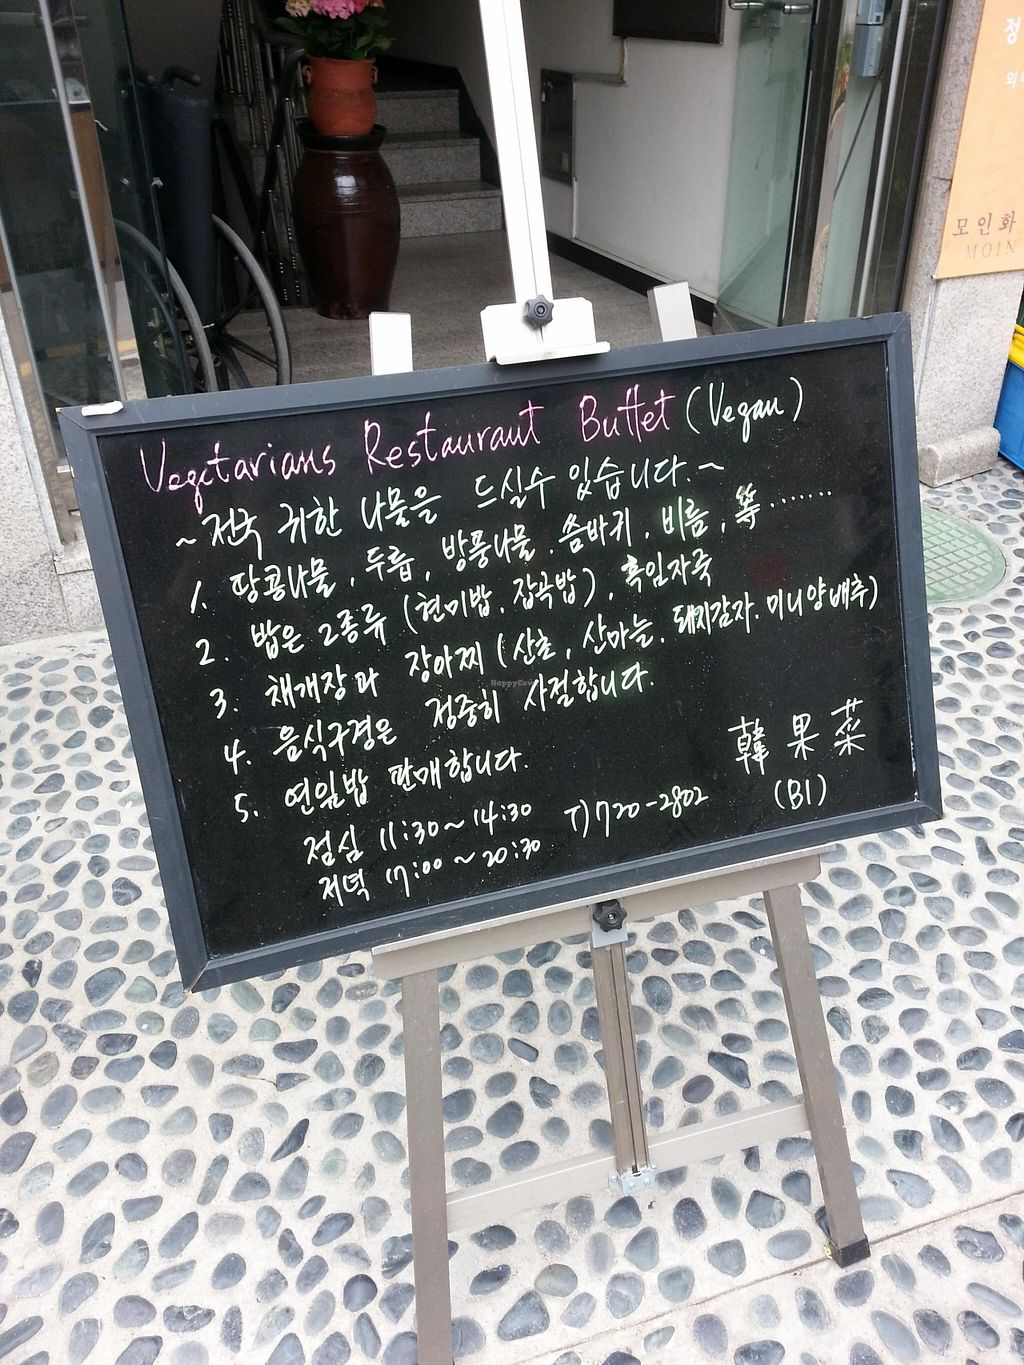 """Photo of Han Gwa Chae - 한과채  by <a href=""""/members/profile/inthesewords"""">inthesewords</a> <br/>The buffet sign that could be outside <br/> May 9, 2016  - <a href='/contact/abuse/image/11982/148168'>Report</a>"""